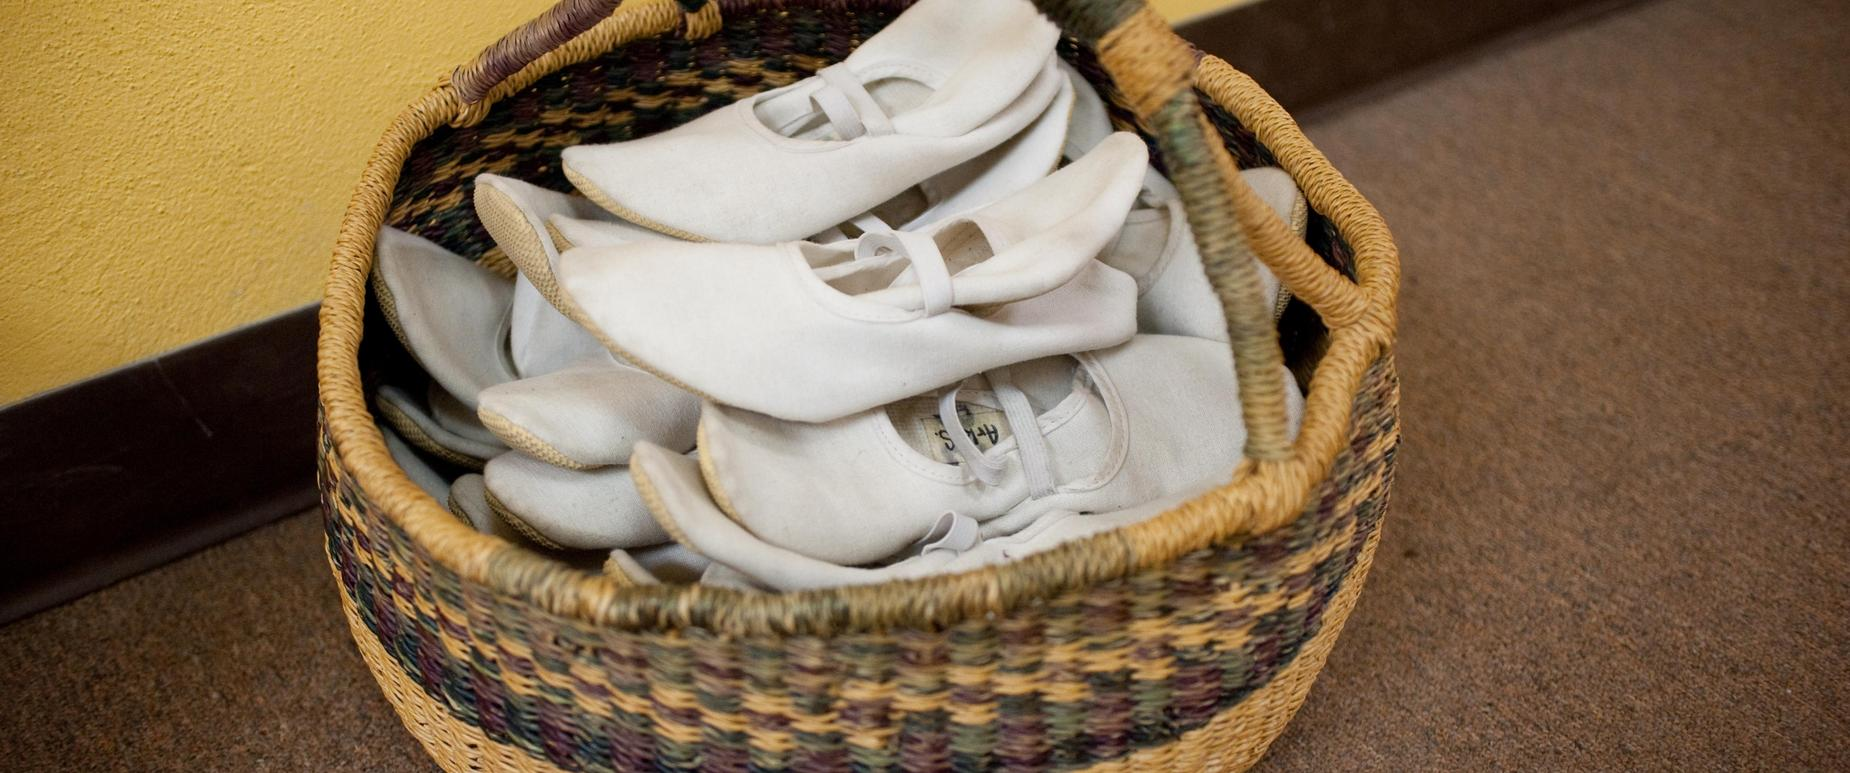 basket of eurythmy slippers